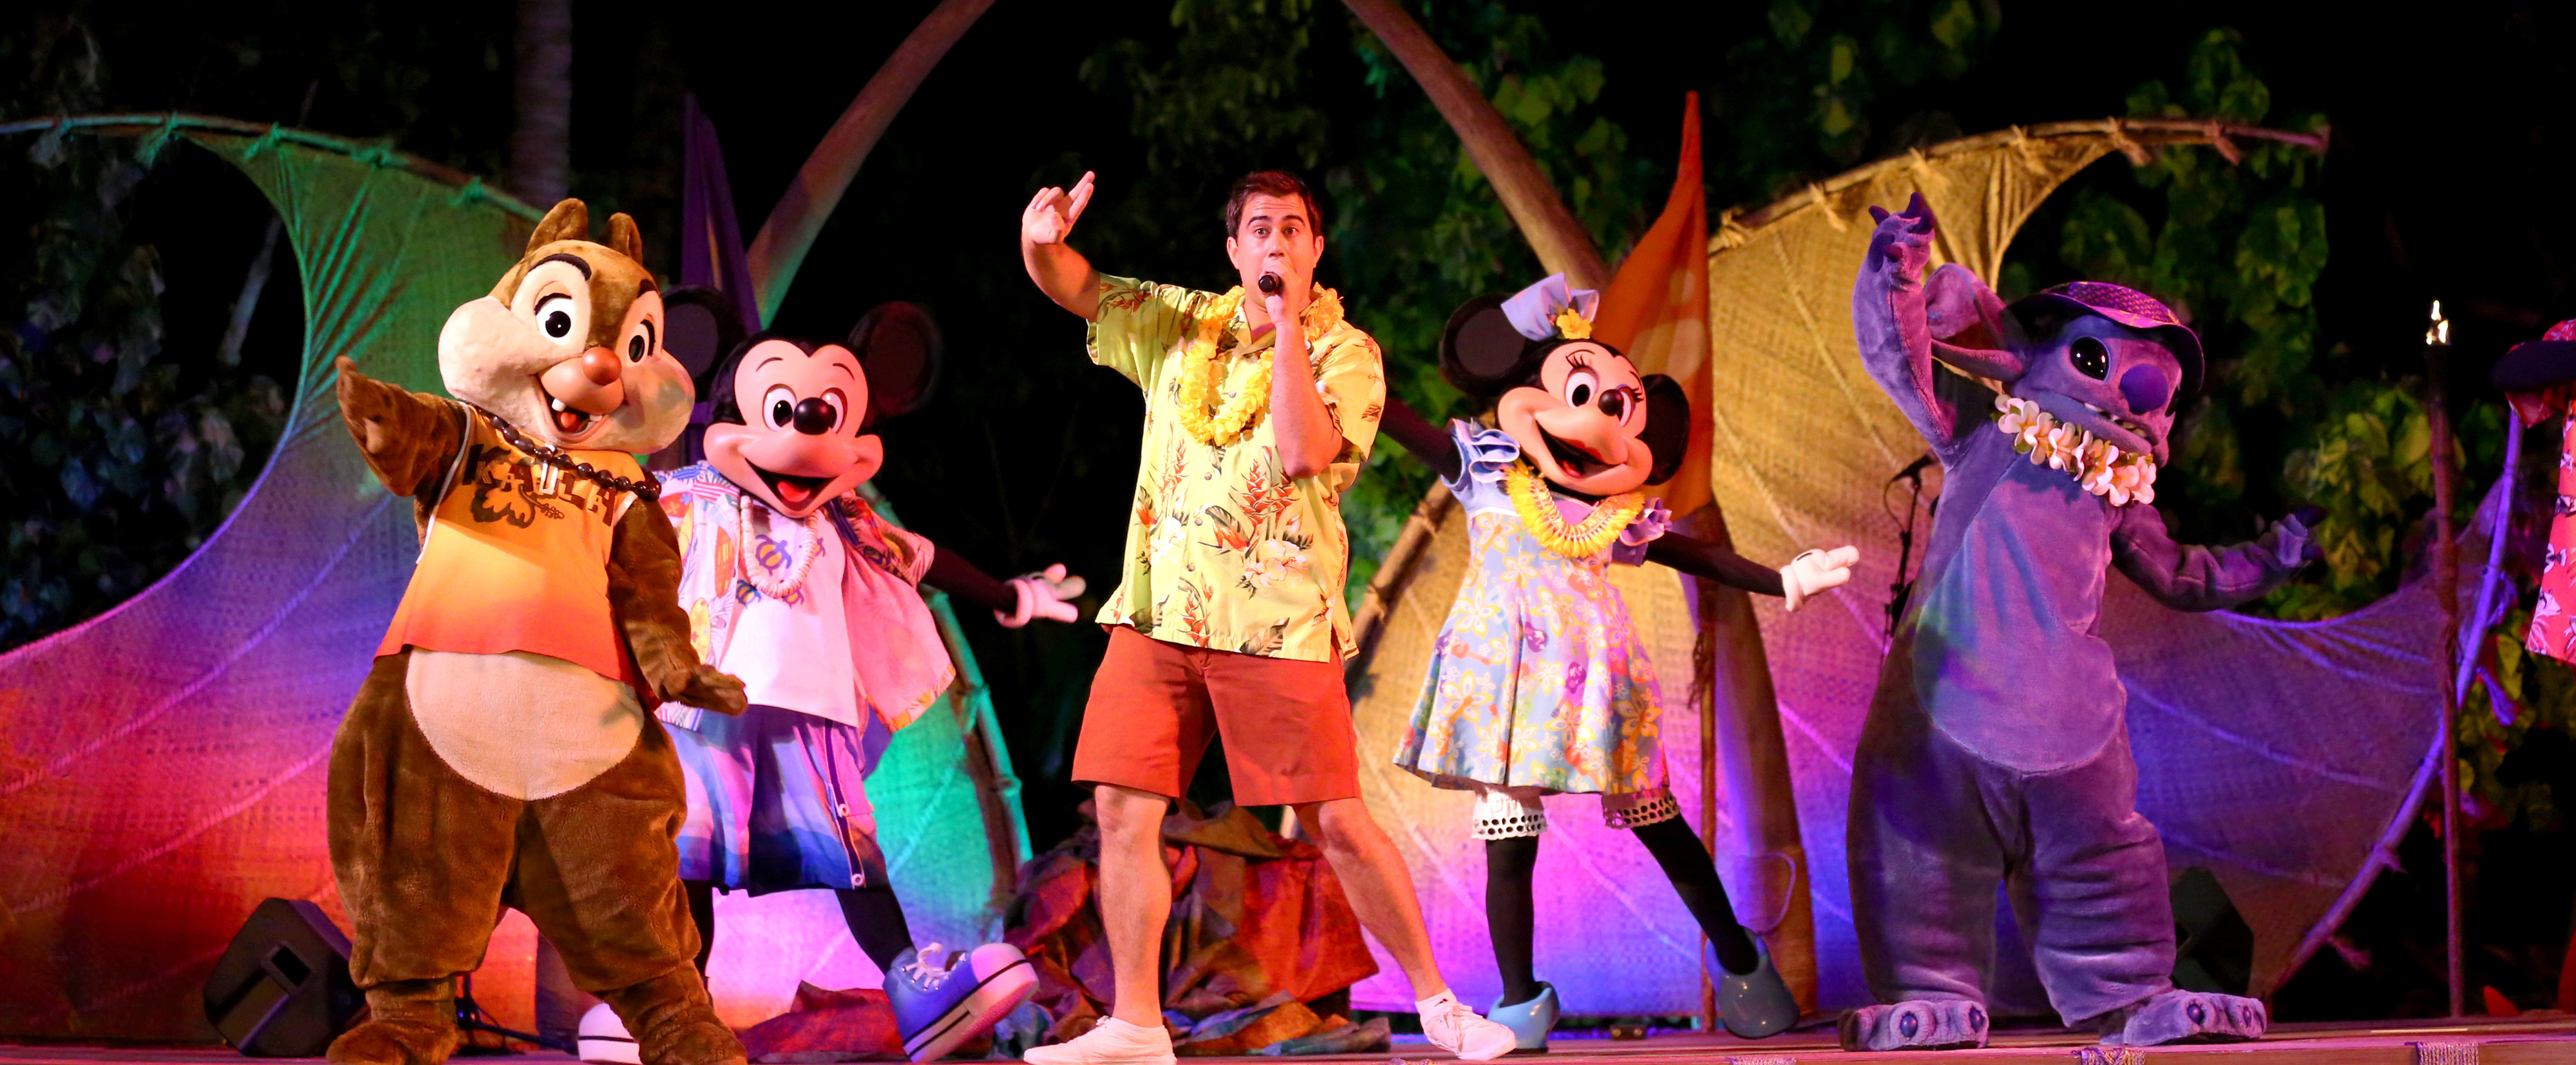 A Cast Member sings and dances onstage with Dale, Mickey, Minnie and Stitch